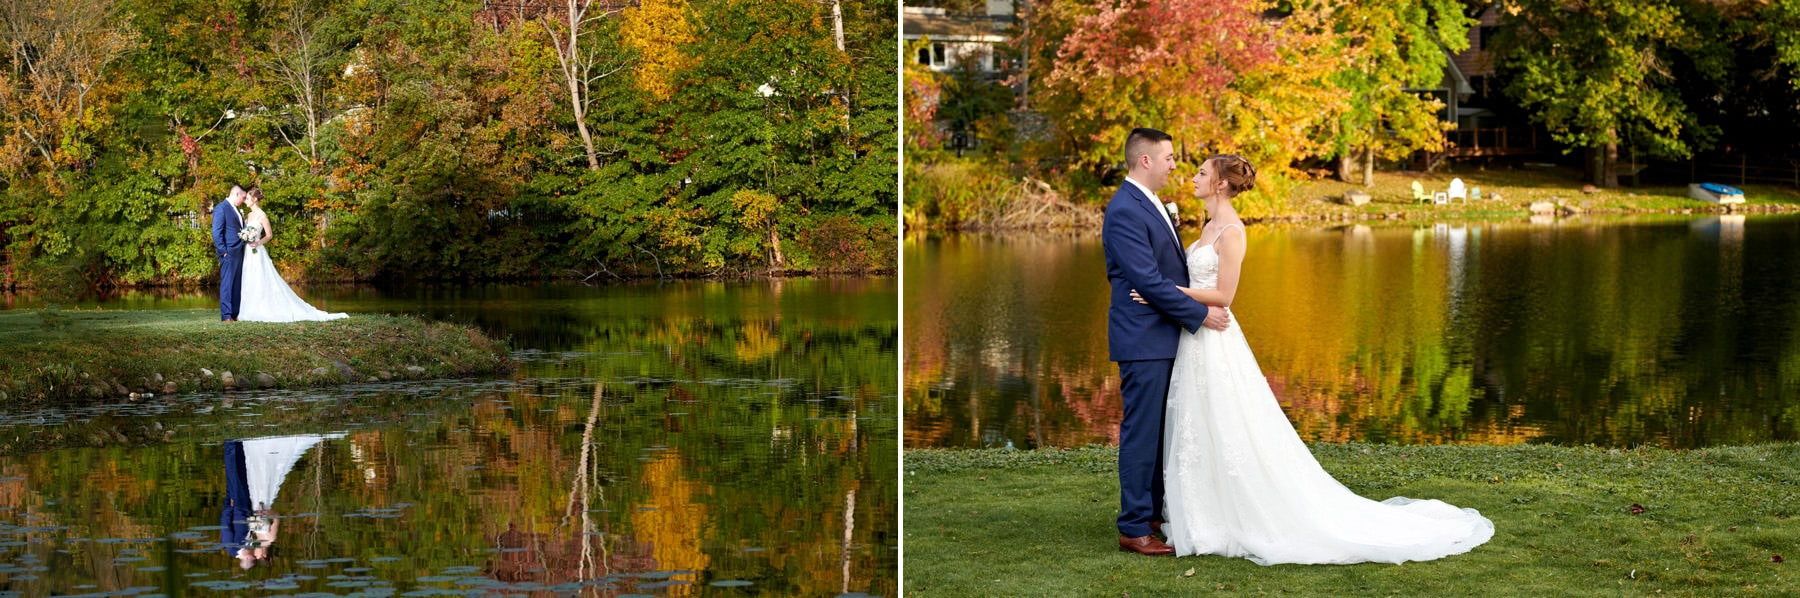 fall wedding photos at ramsey country club